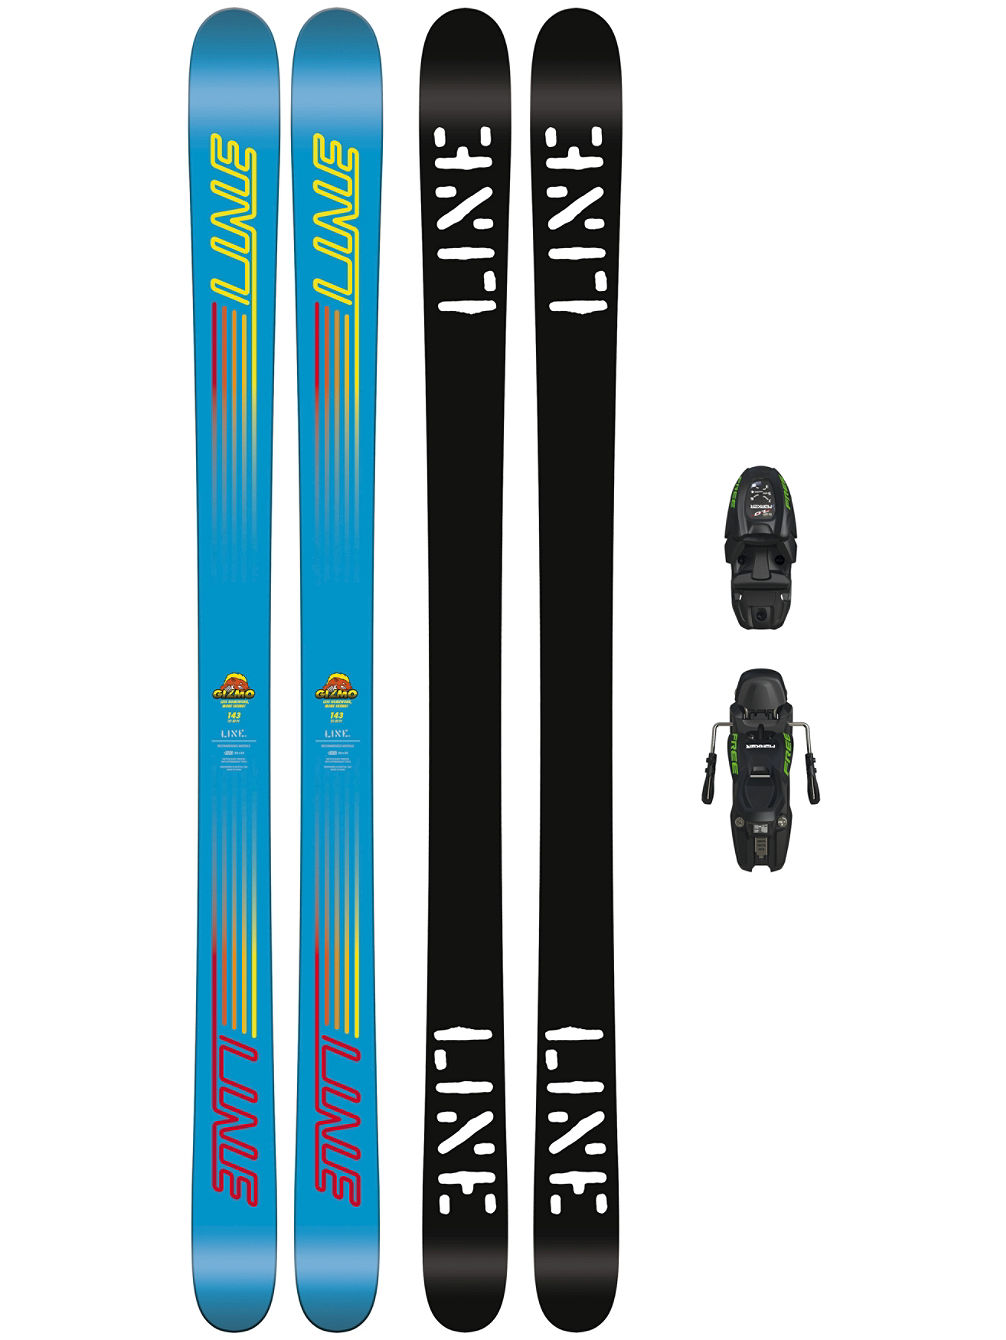 Gizmo 133 + M7.0 Free 85mm 2018 Youth Conjunto freeski